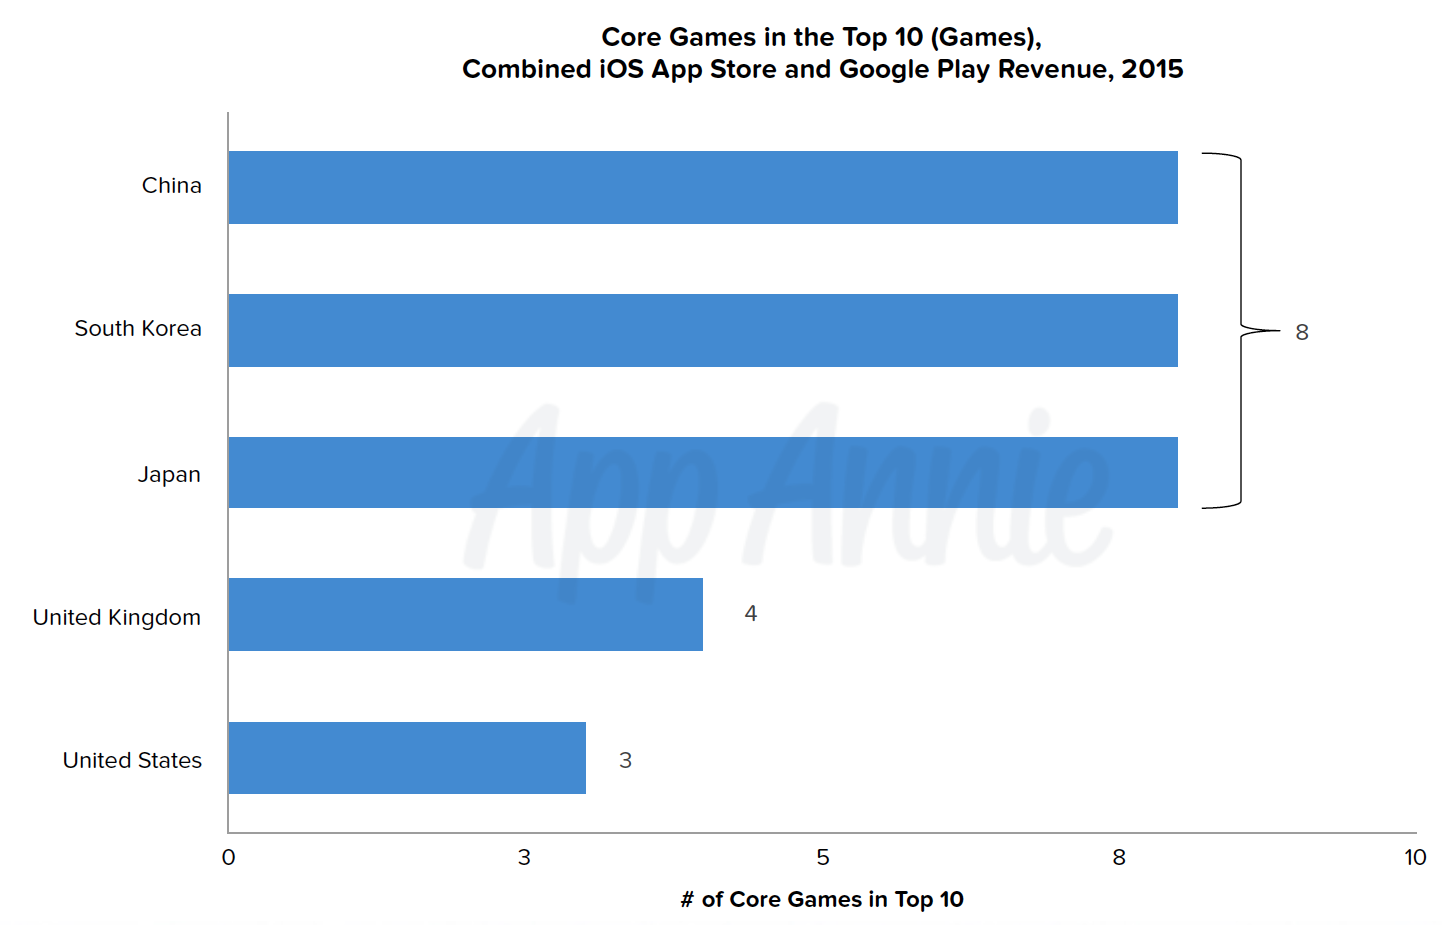 Core games in the Top 10 Combined iOS and Google Play Revenue